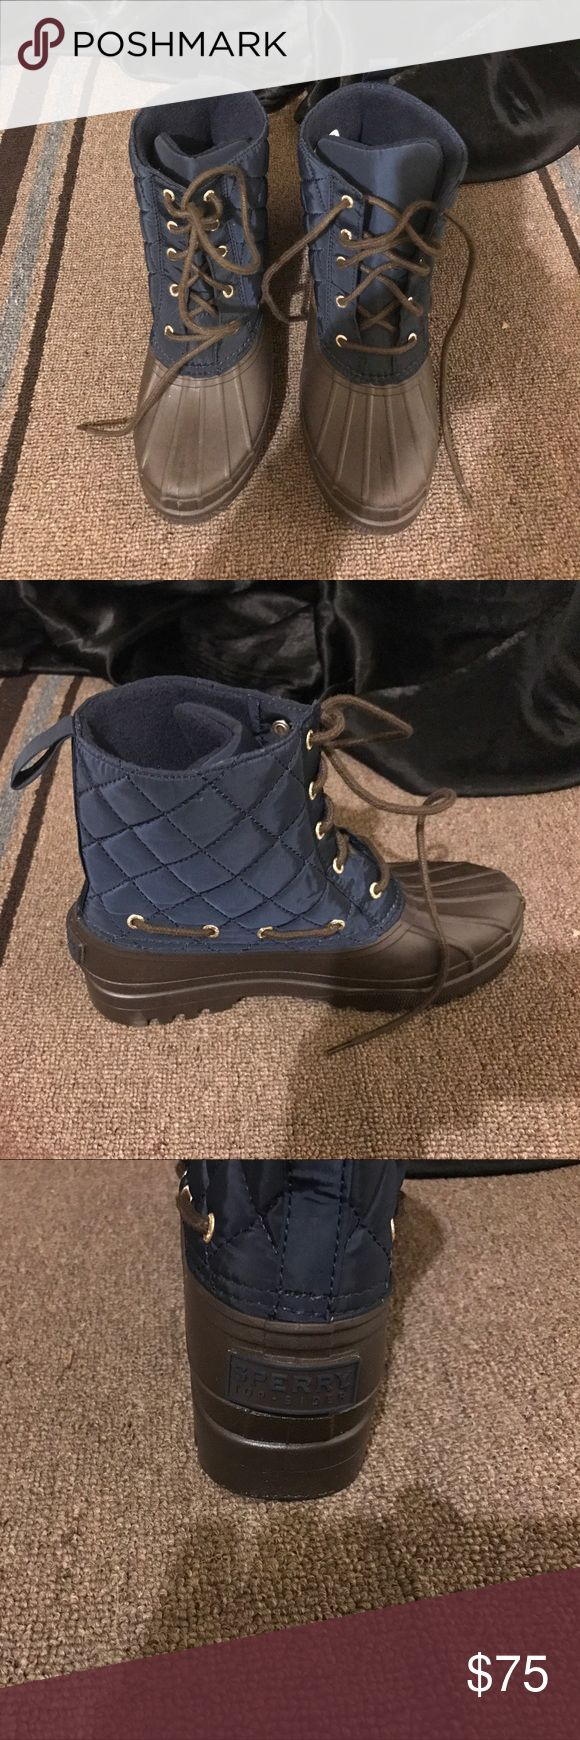 Sperry women's duck boots size 8 Brand new never worn Sperry duck boots size 8. Blue quilted top Brown rubber bottom Sperry Shoes Winter & Rain Boots